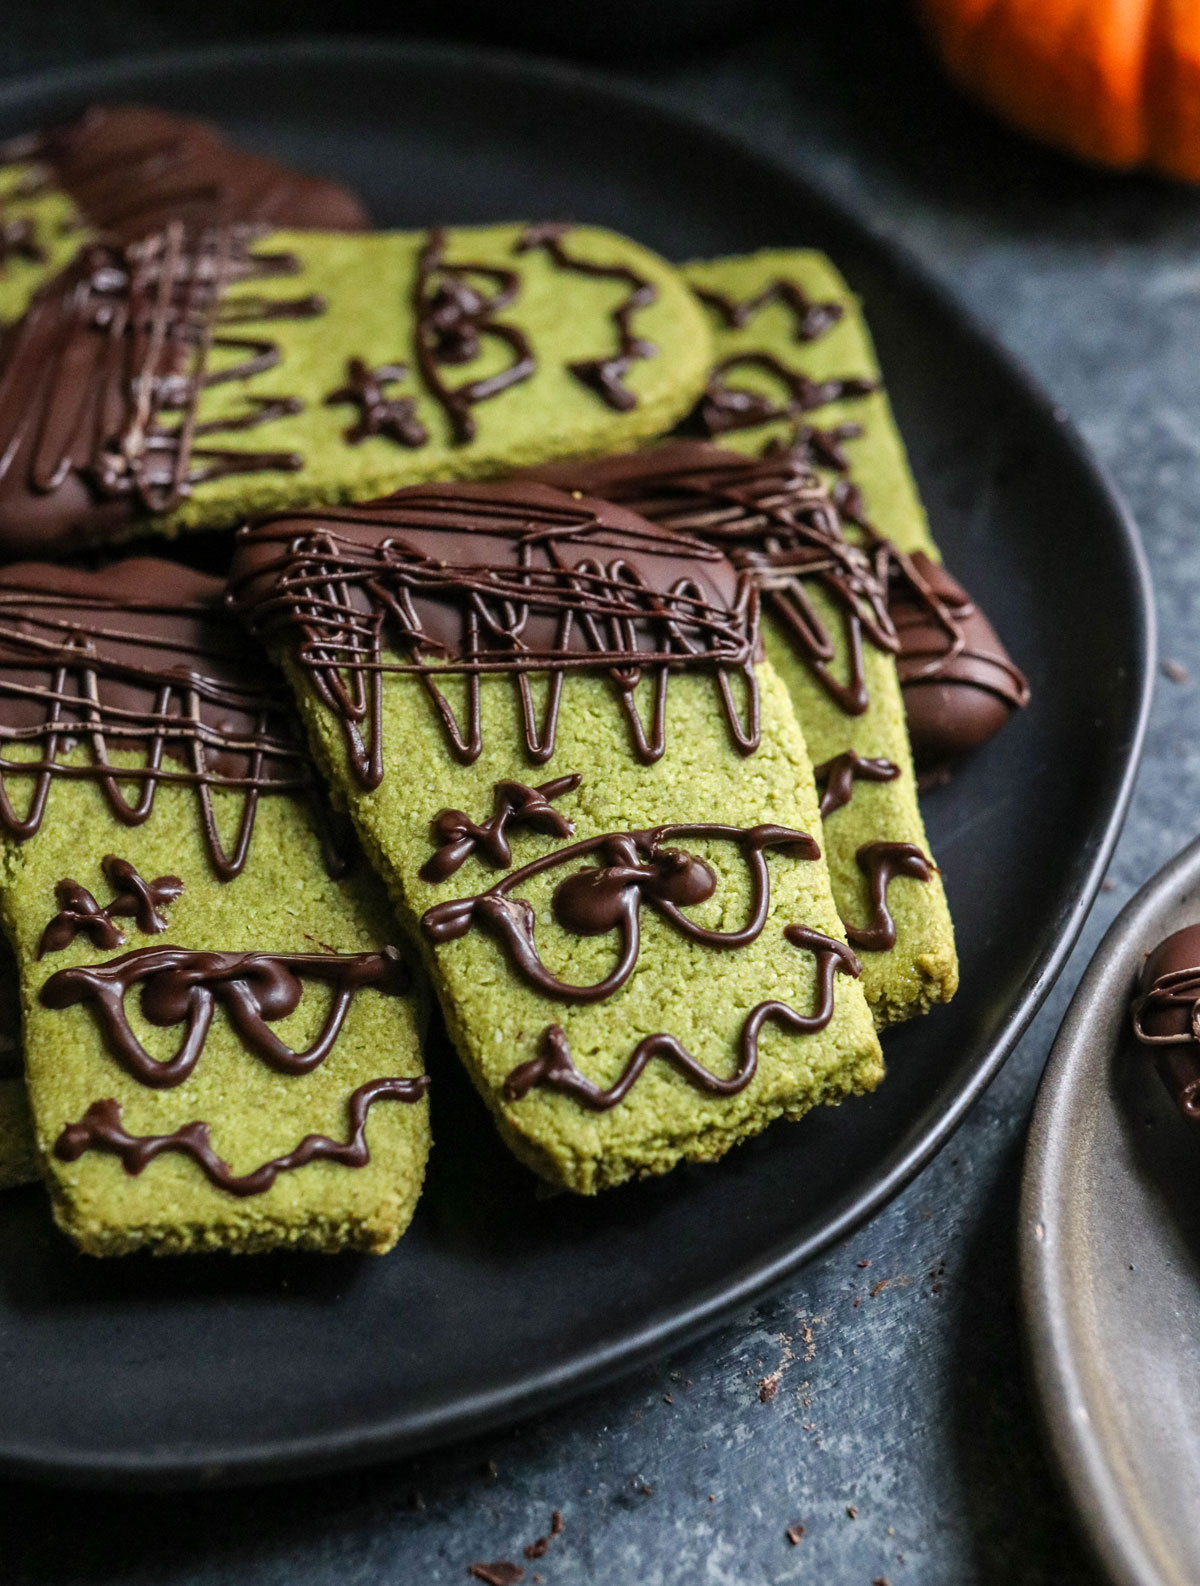 frankenstein cookies on black plate